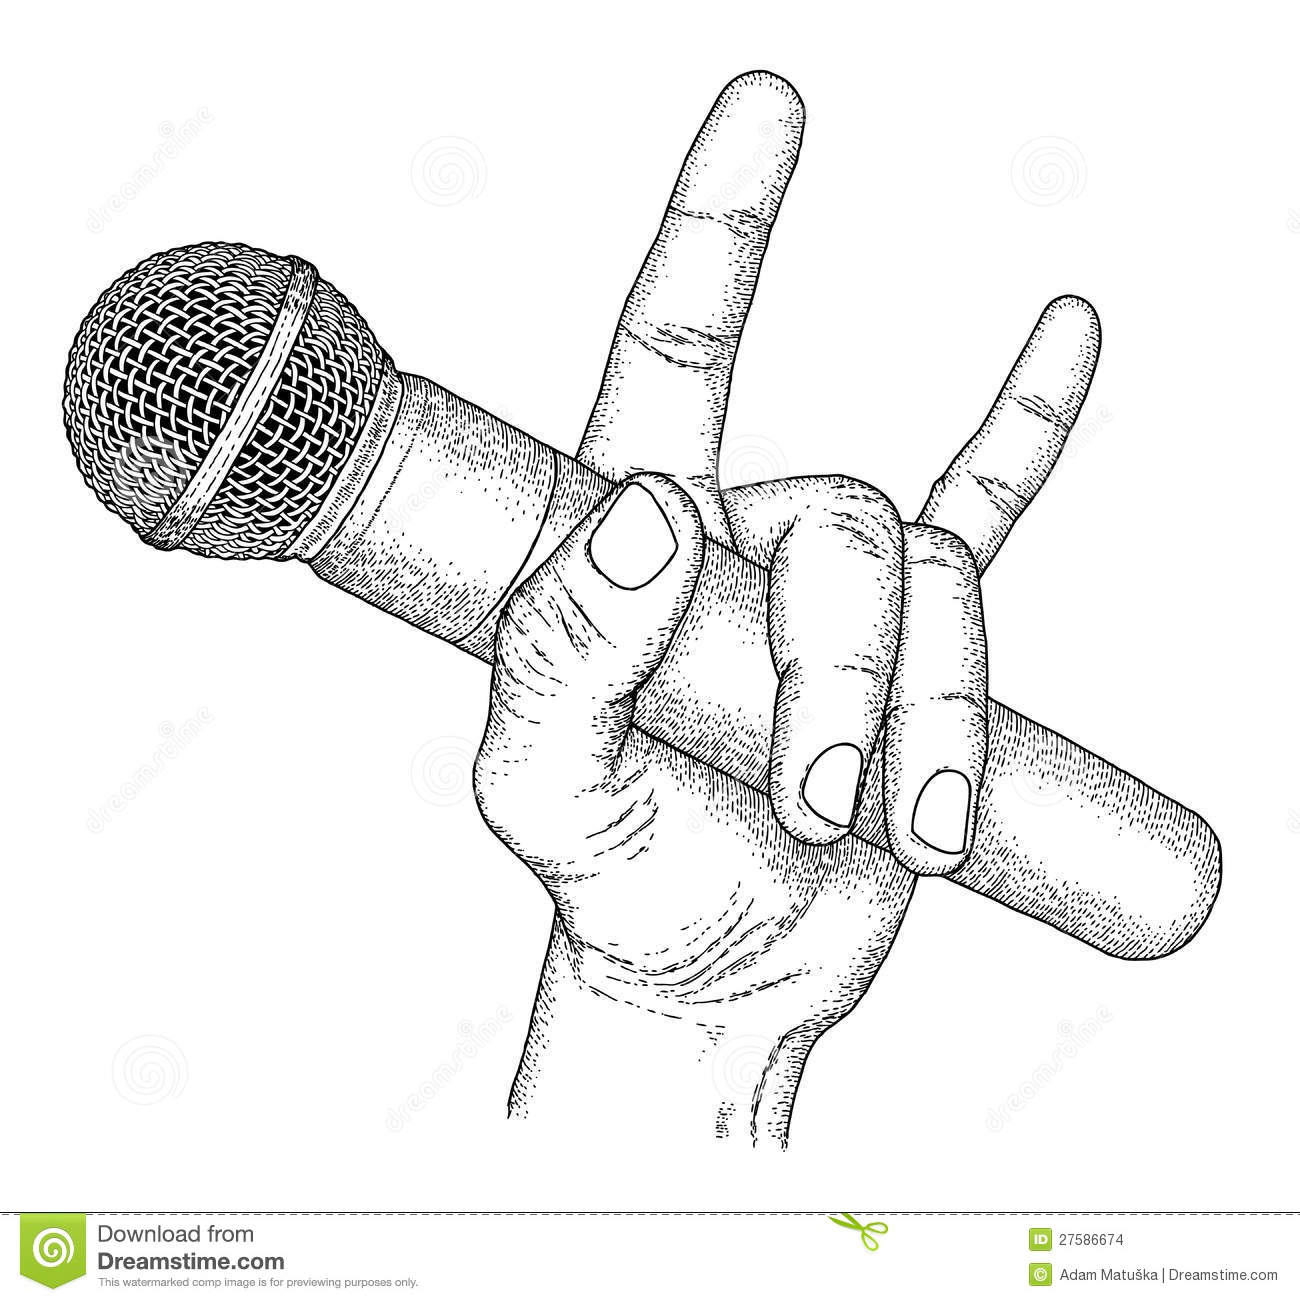 Microphone Stock Vector Illustration Of Drawn Hand